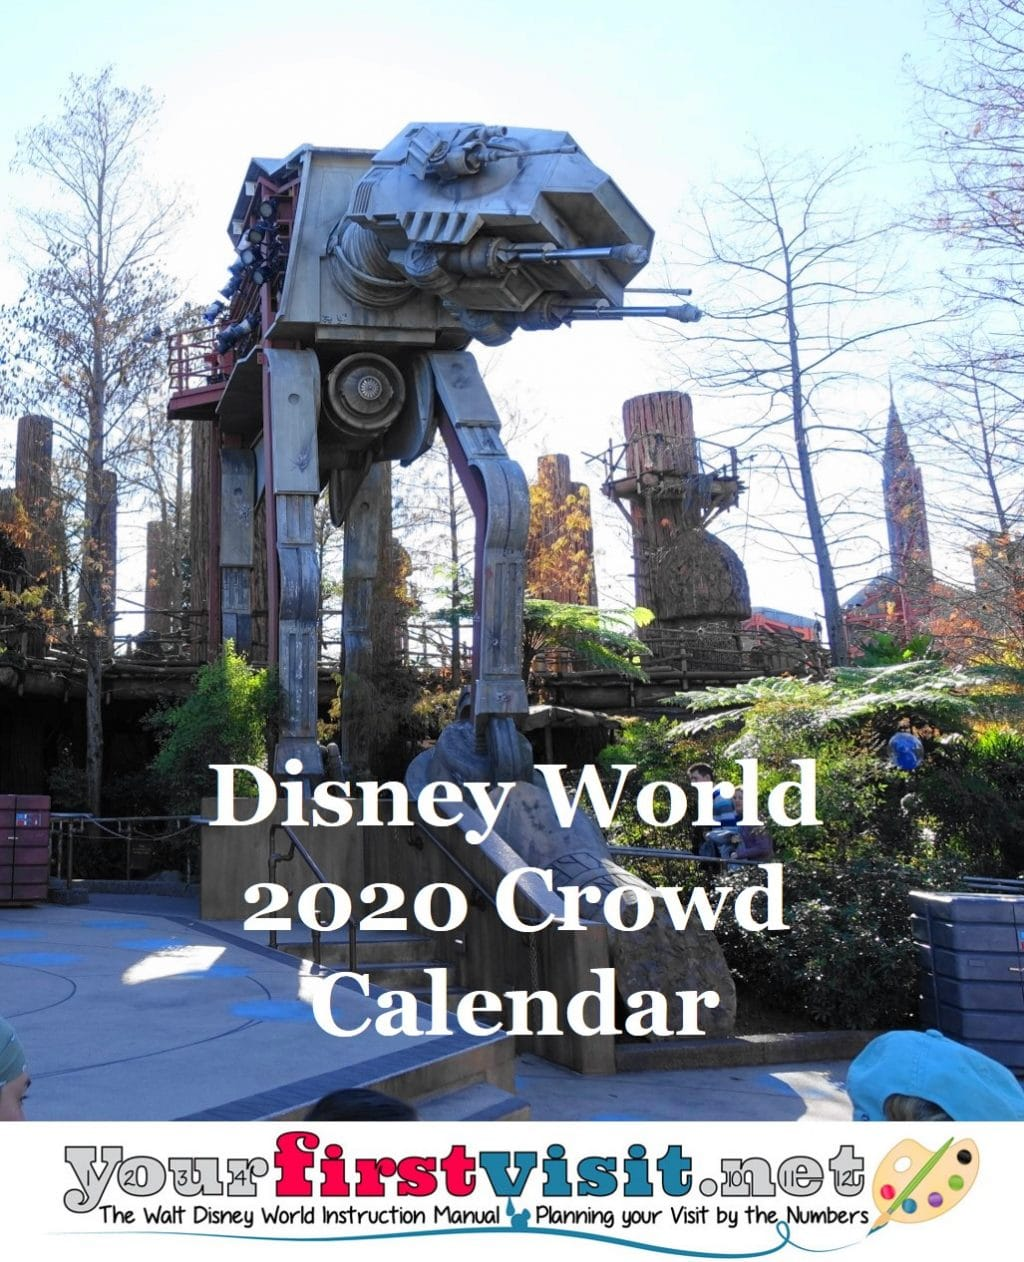 Magic Kingdom Crowd Calendar 2020 Disney World Crowds in 2020   yourfirstvisit.net